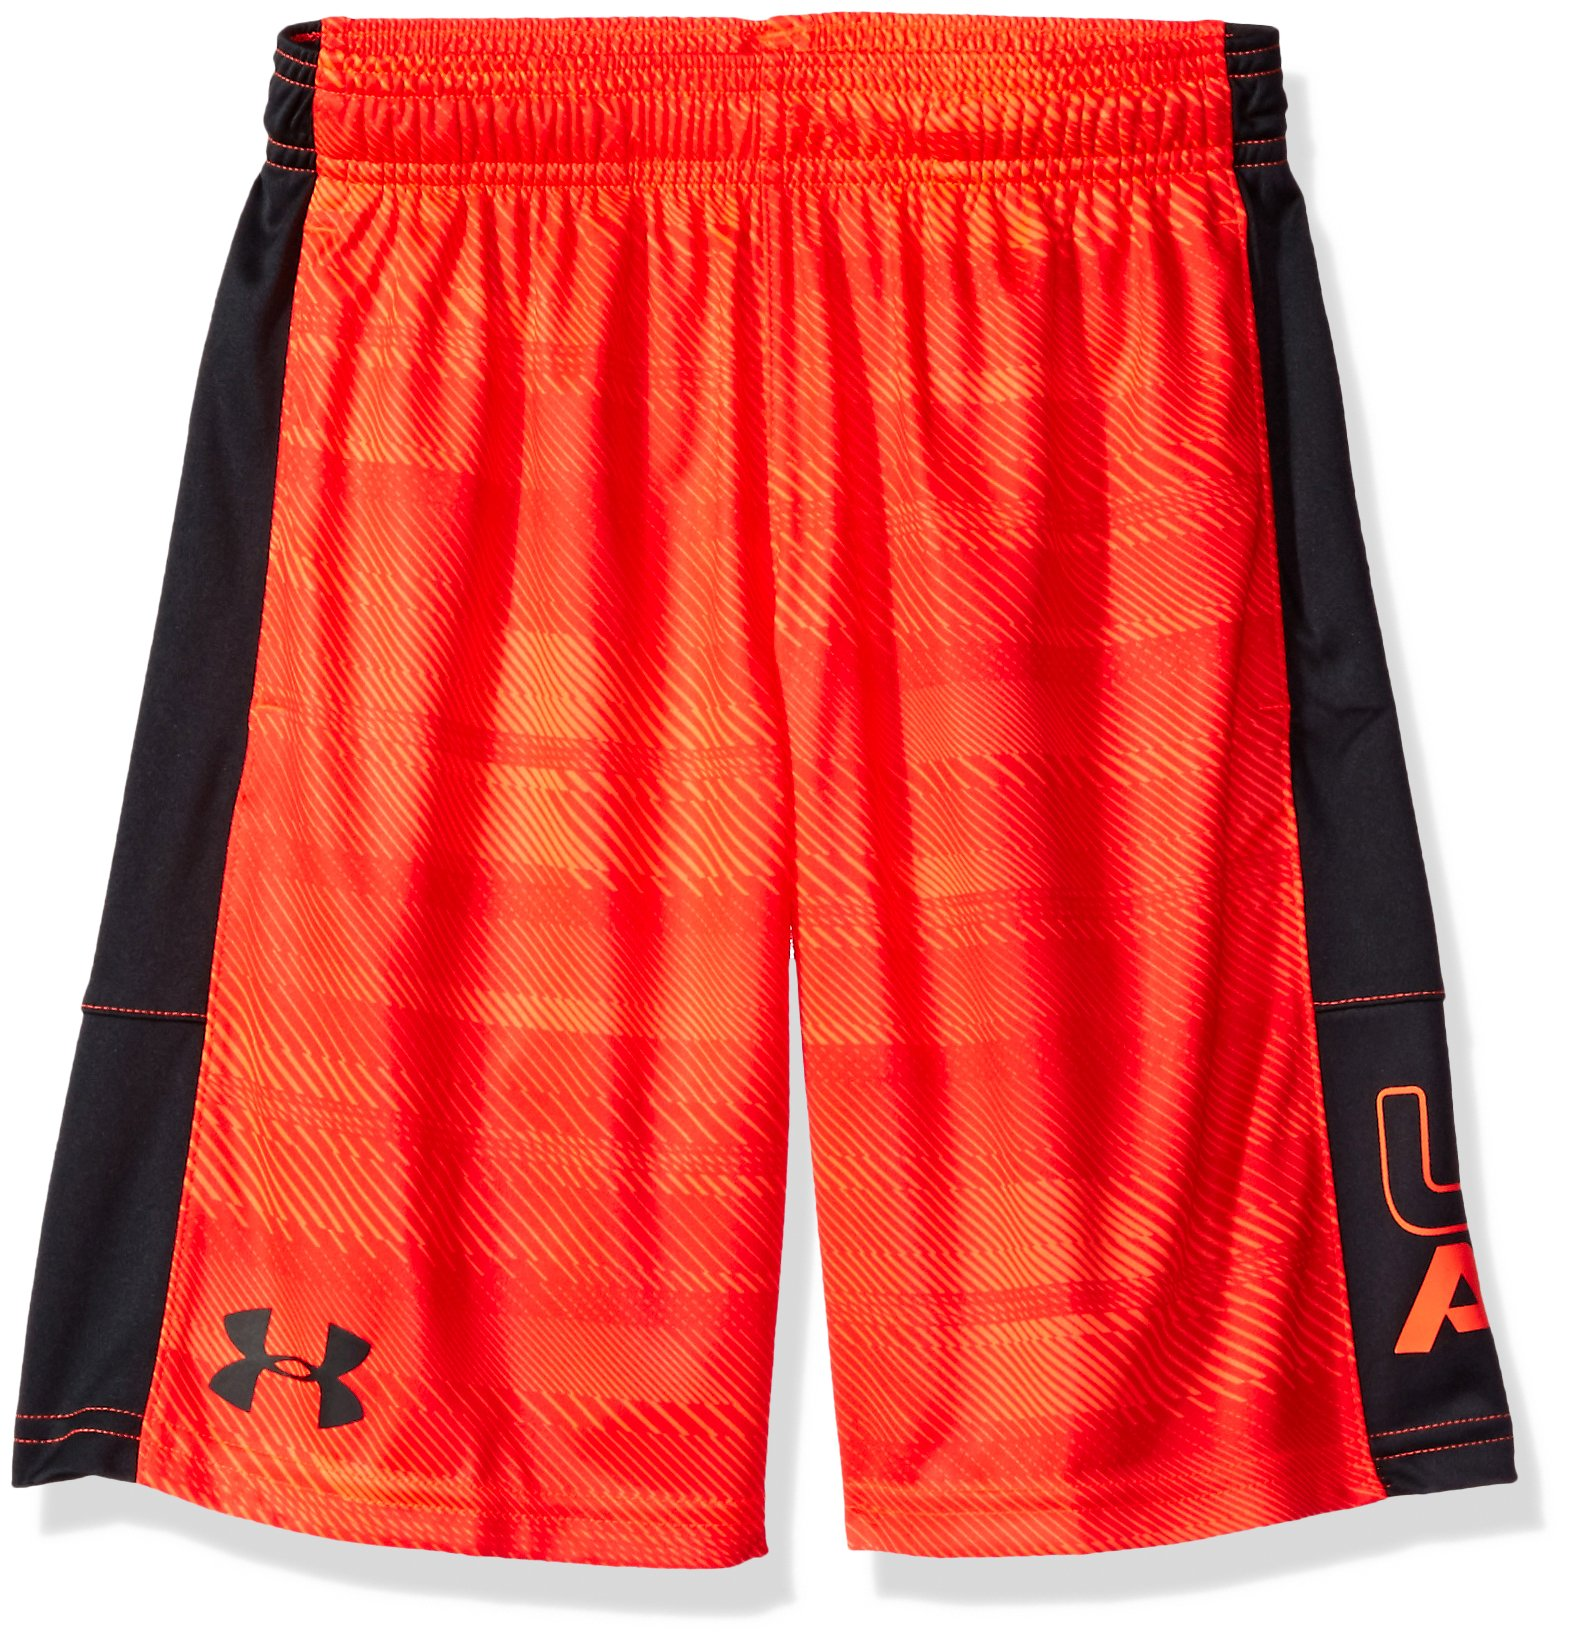 Under Armour Boys' Instinct Printed Shorts, Magma Orange /Anthracite Youth X-Small